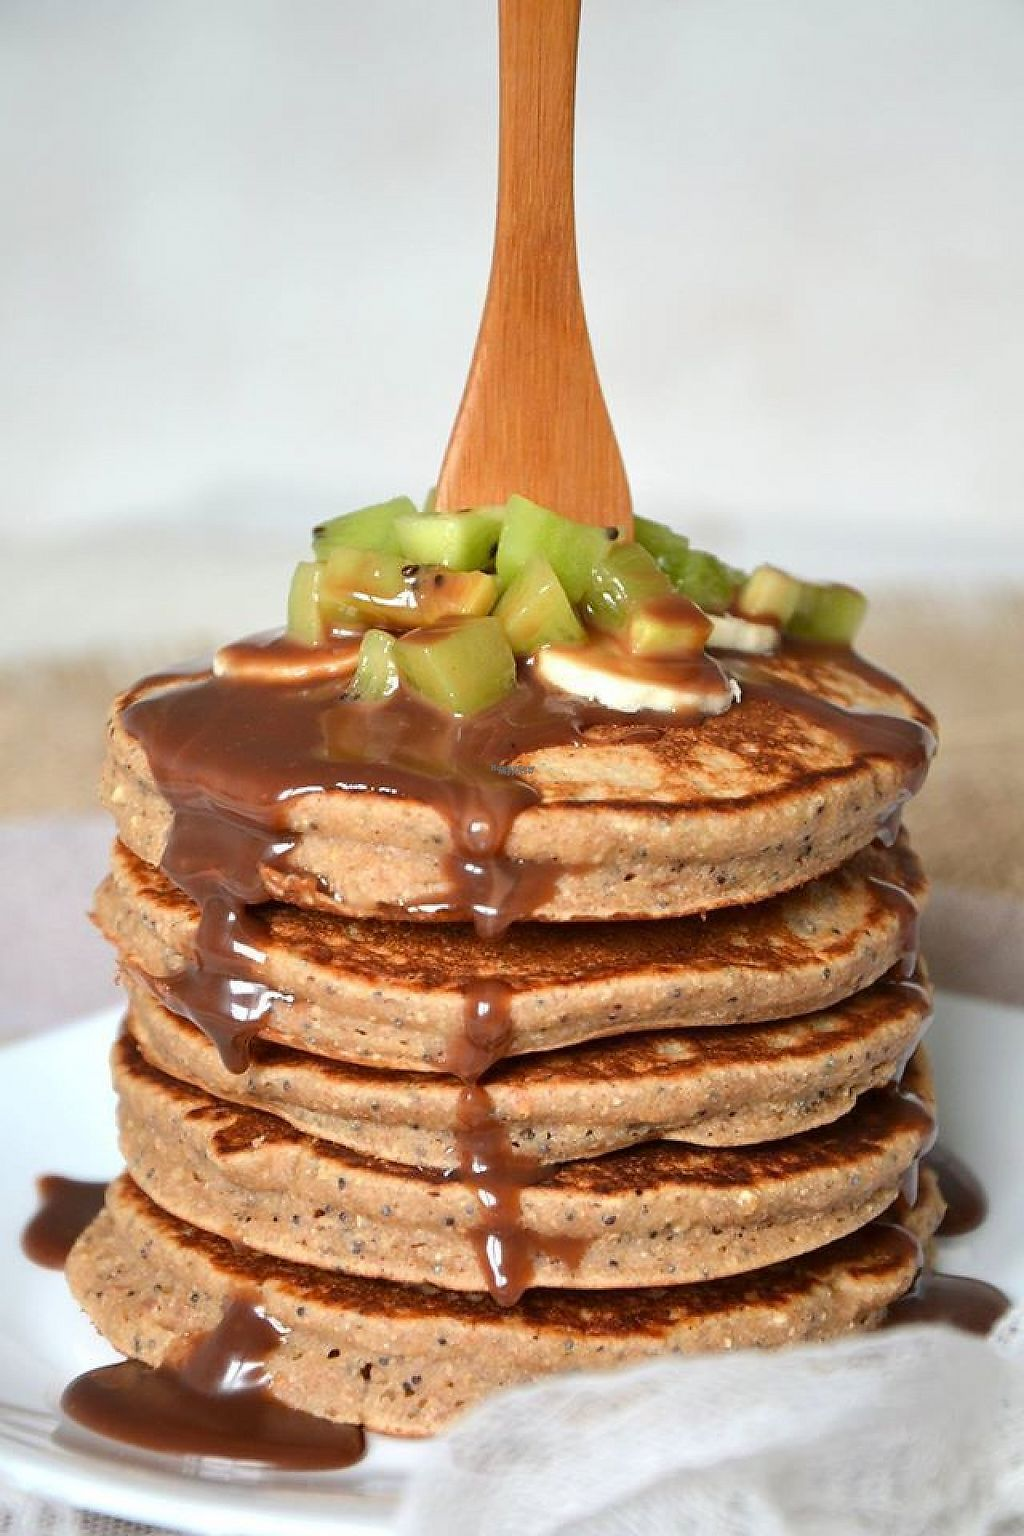 """Photo of La Vie Claire  by <a href=""""/members/profile/community"""">community</a> <br/>vegan pancakes  <br/> February 4, 2017  - <a href='/contact/abuse/image/68791/221838'>Report</a>"""